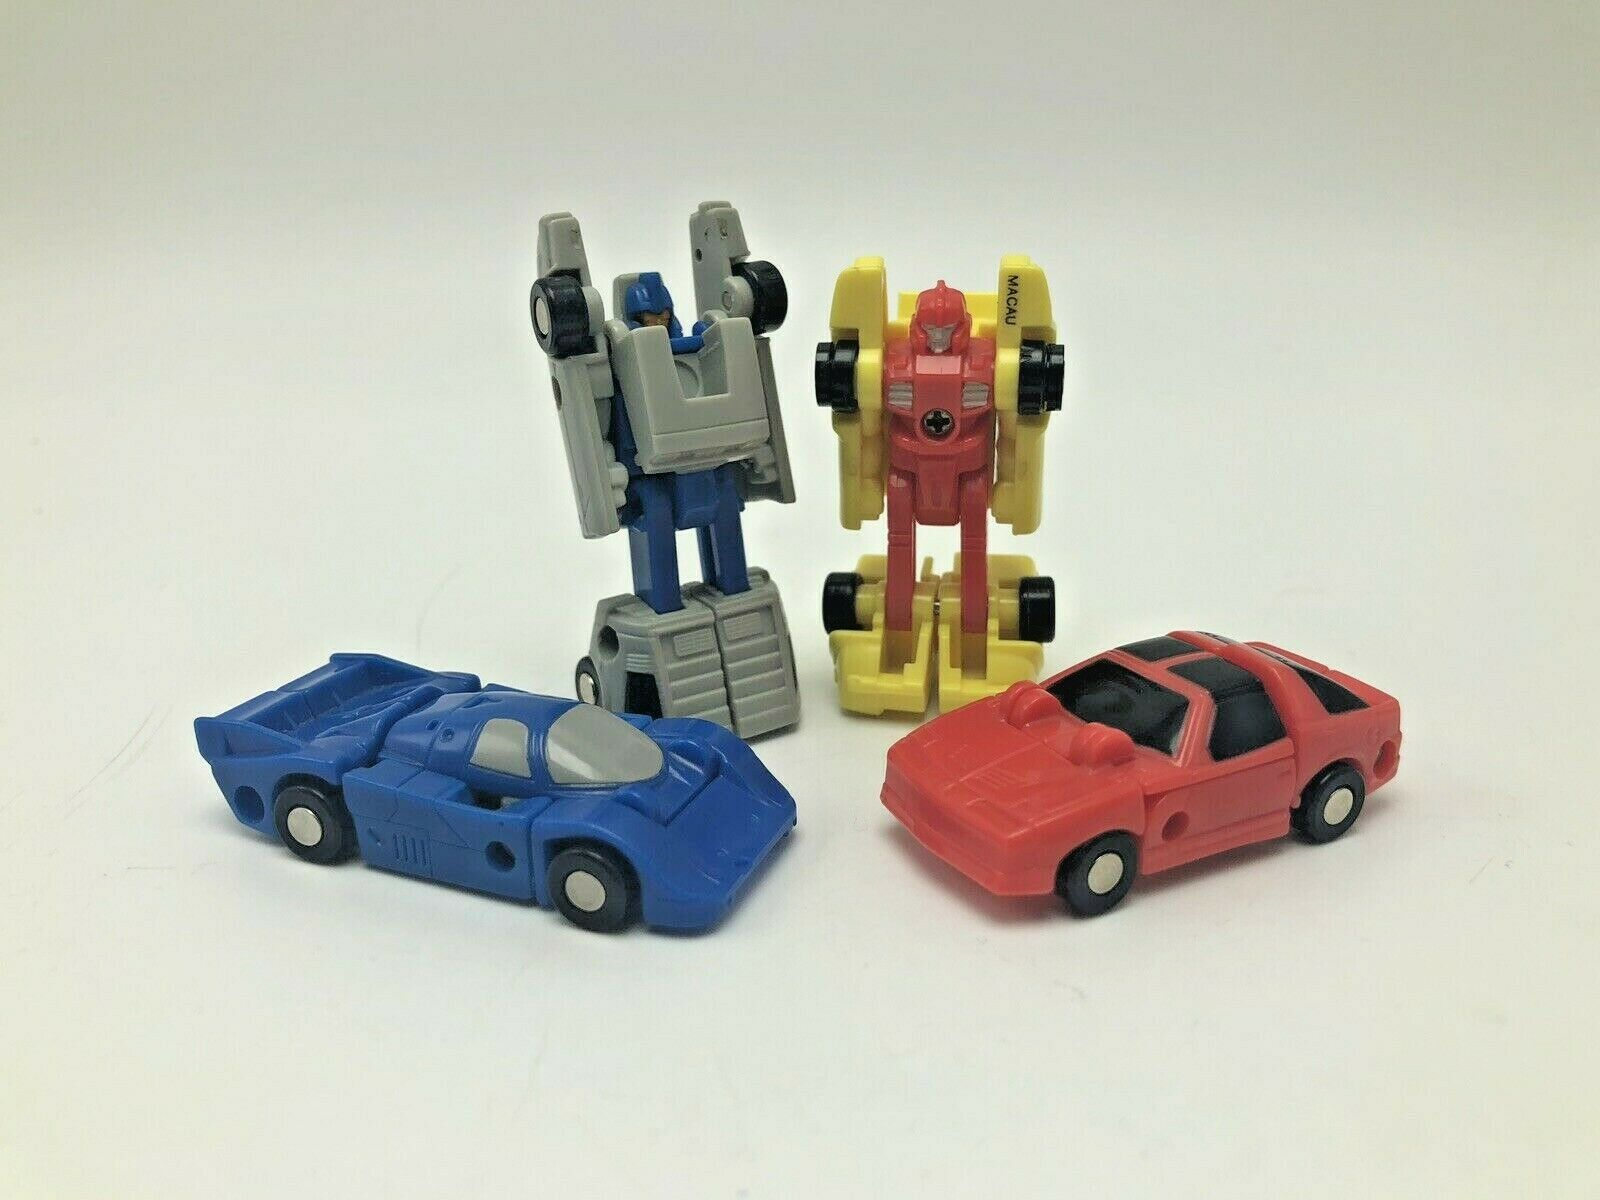 Transformers G1 1988 Mini Micromasters Autobots Lot of 4 Race Cars Delorean